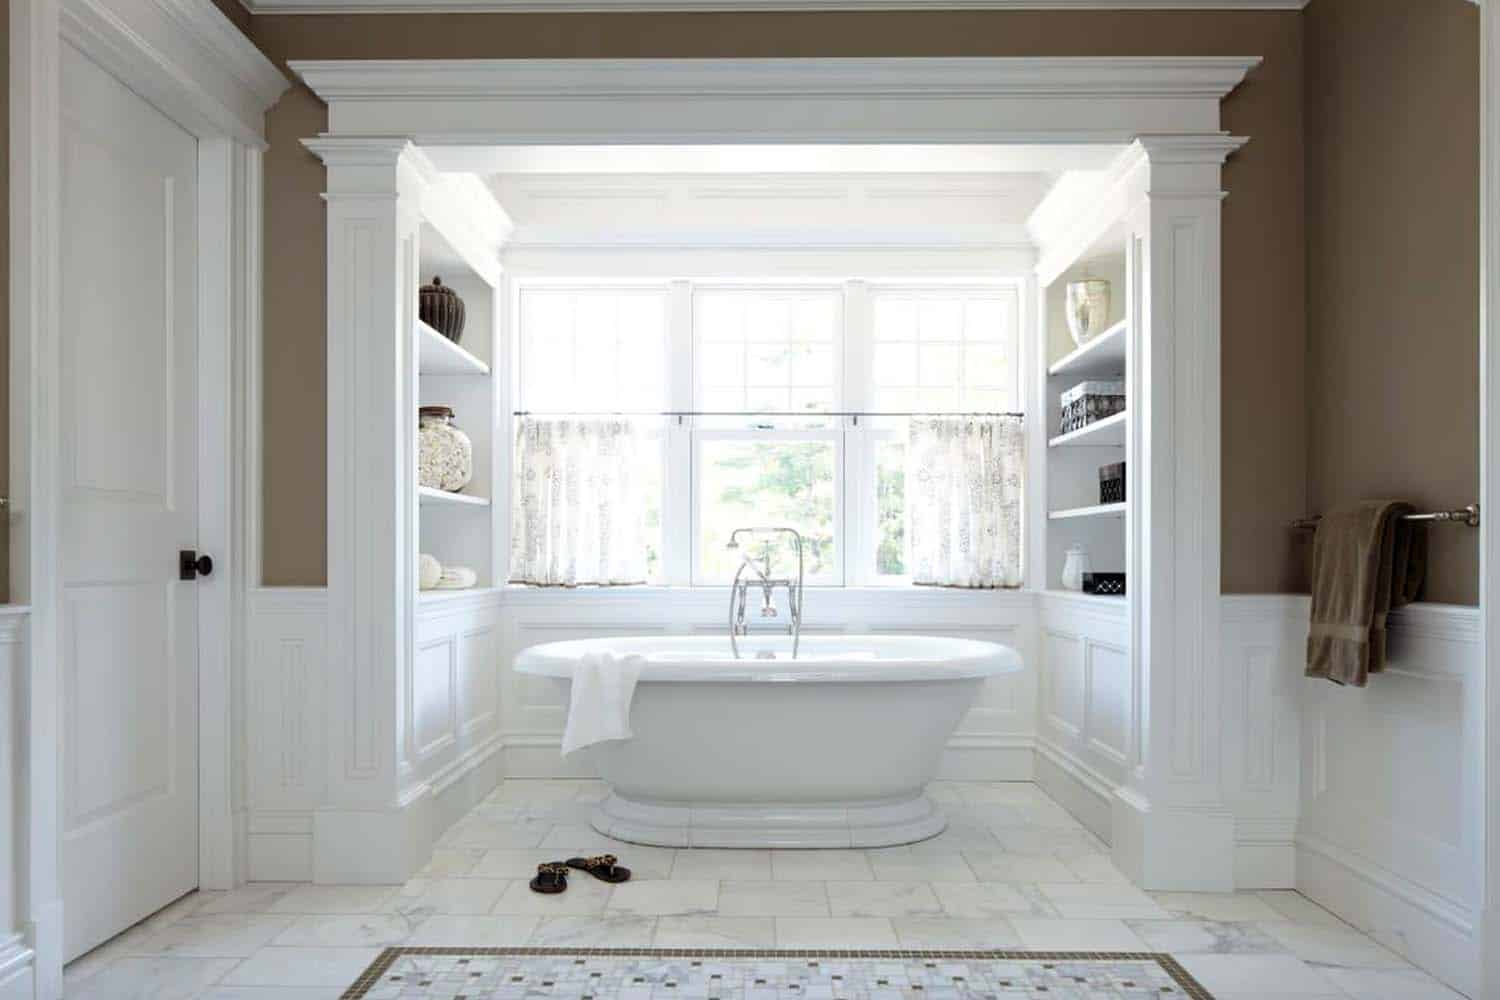 35+ Fabulous freestanding bathtub ideas for a luxurious soak